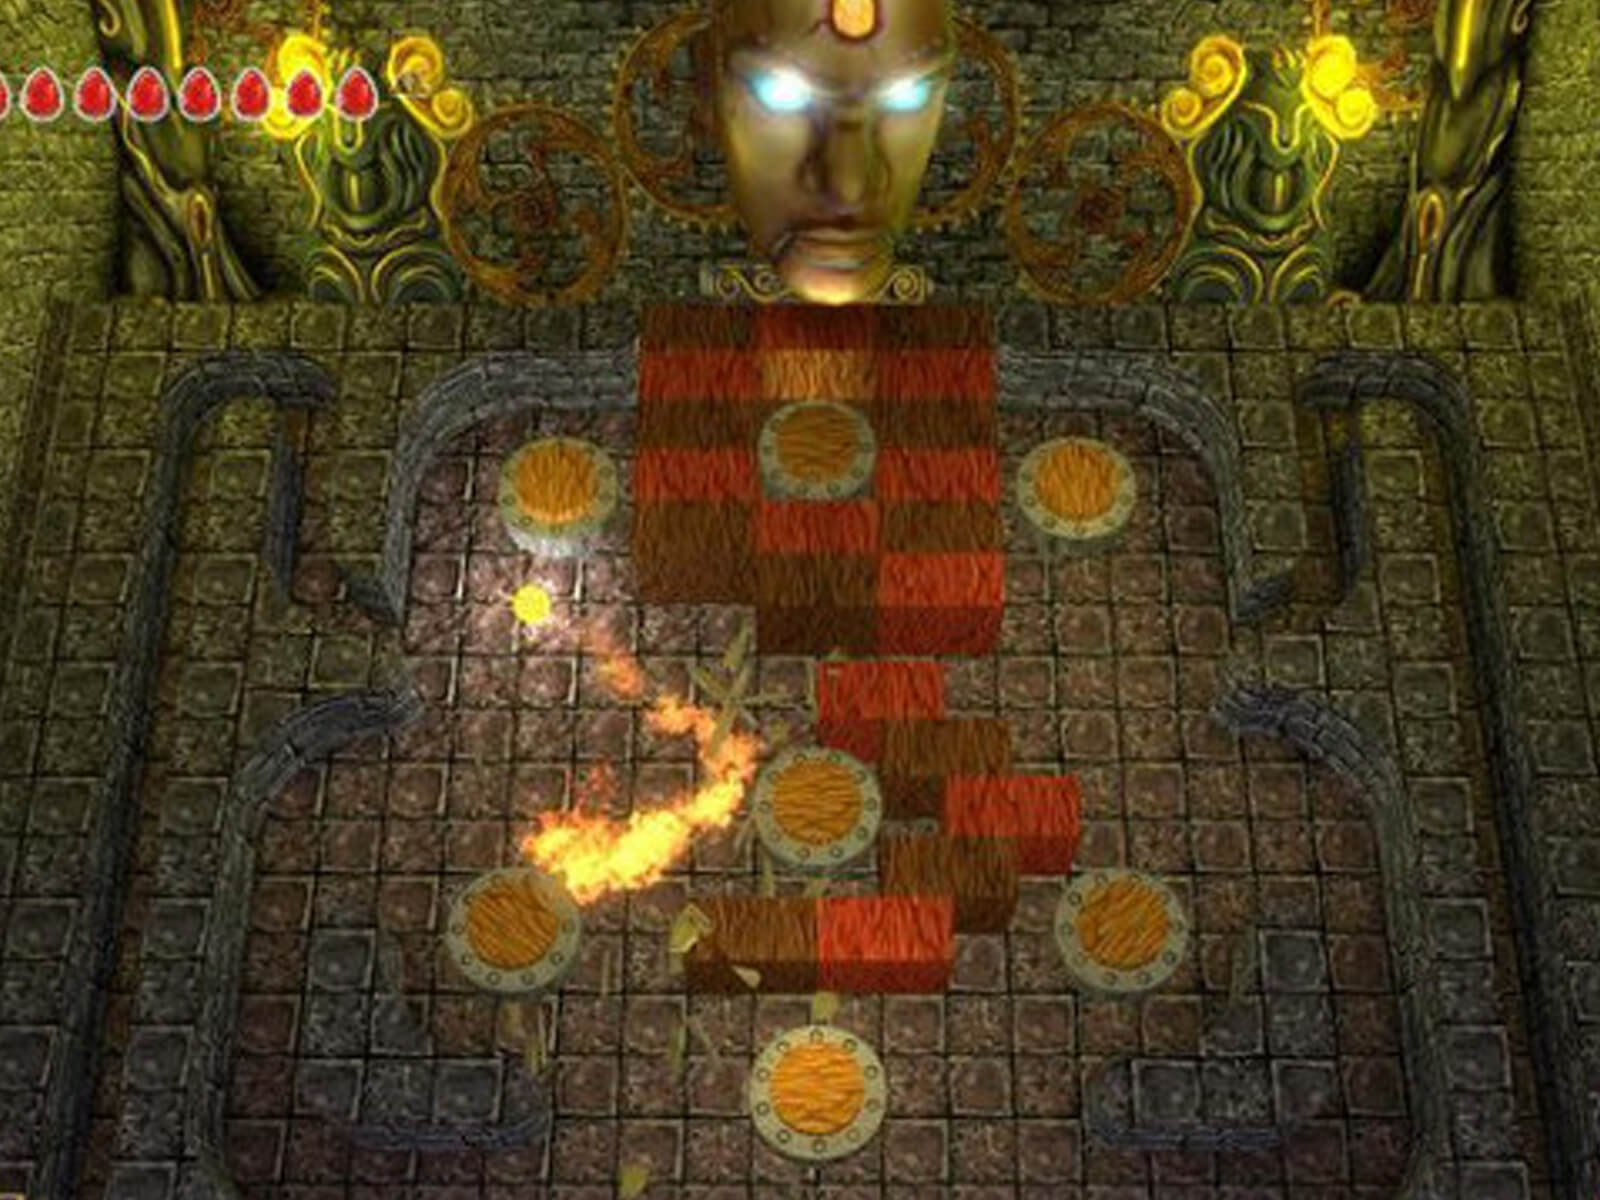 Screenshot from Terra, a ball of flame bounces off various bumpers in a dungeon-like pinball level